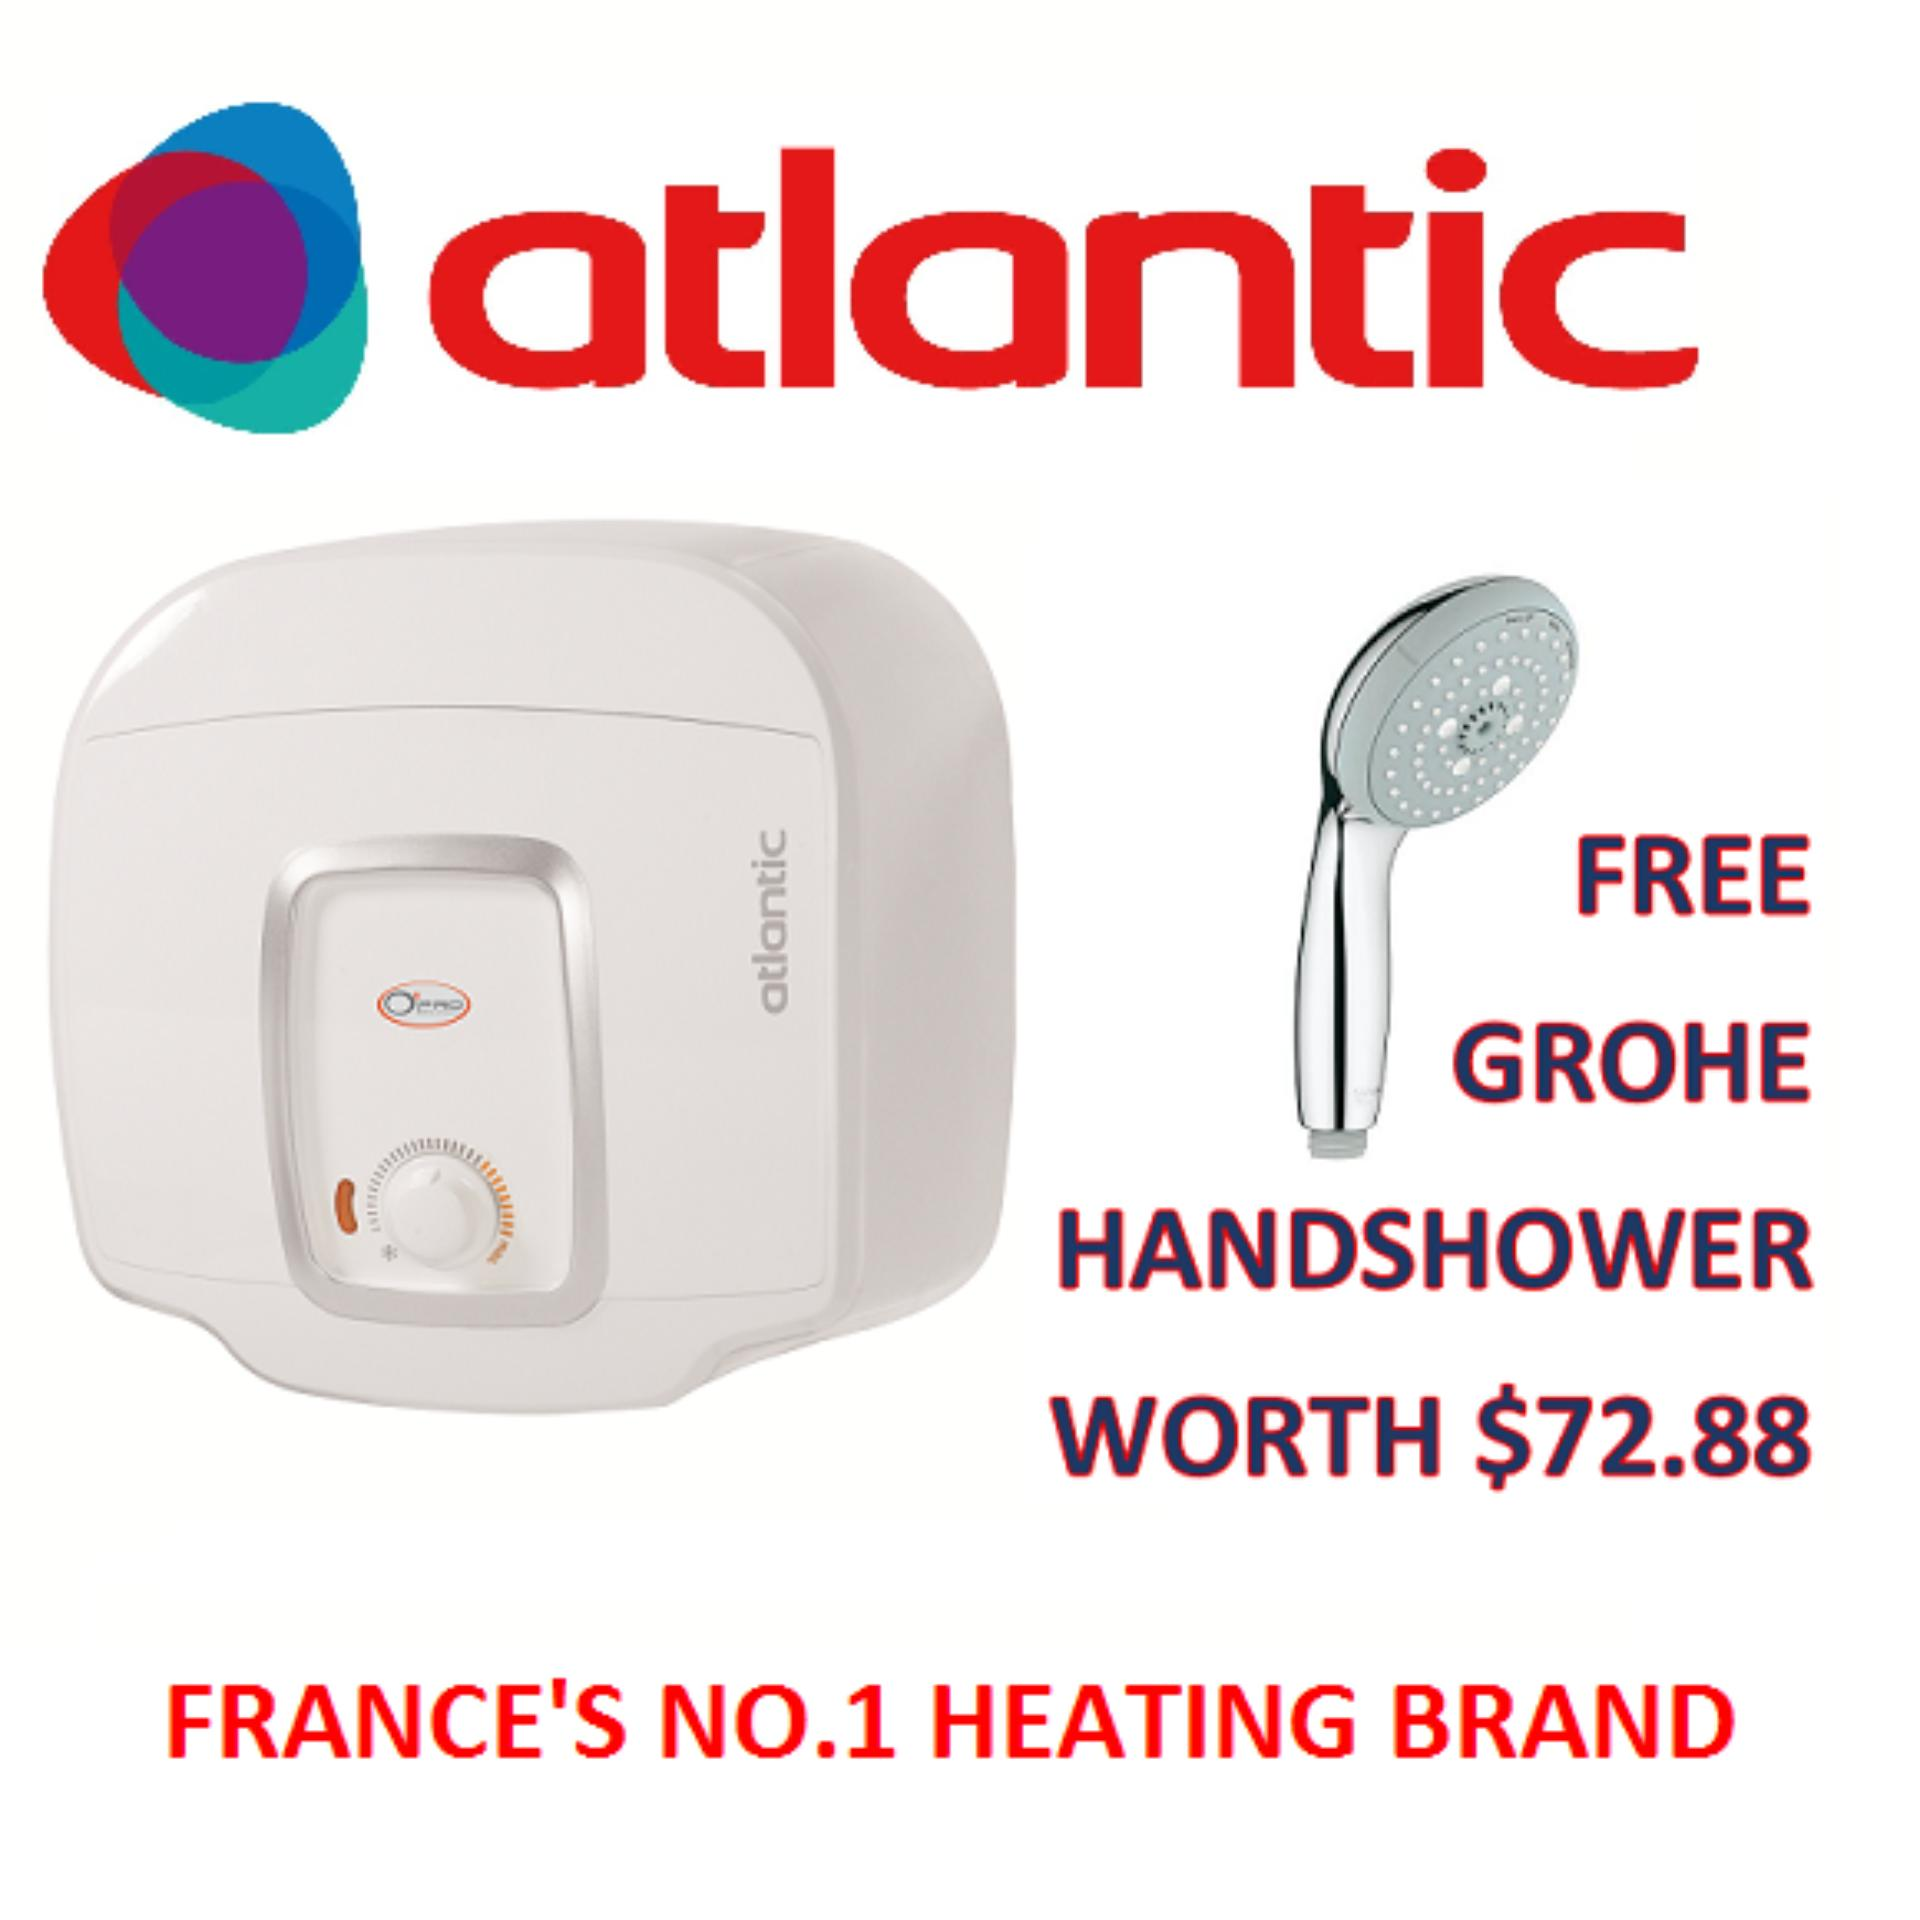 Who Sells The Cheapest Atlantic Swh15Am 15L Storage Tank Heater With Free Grohe Handshower Online